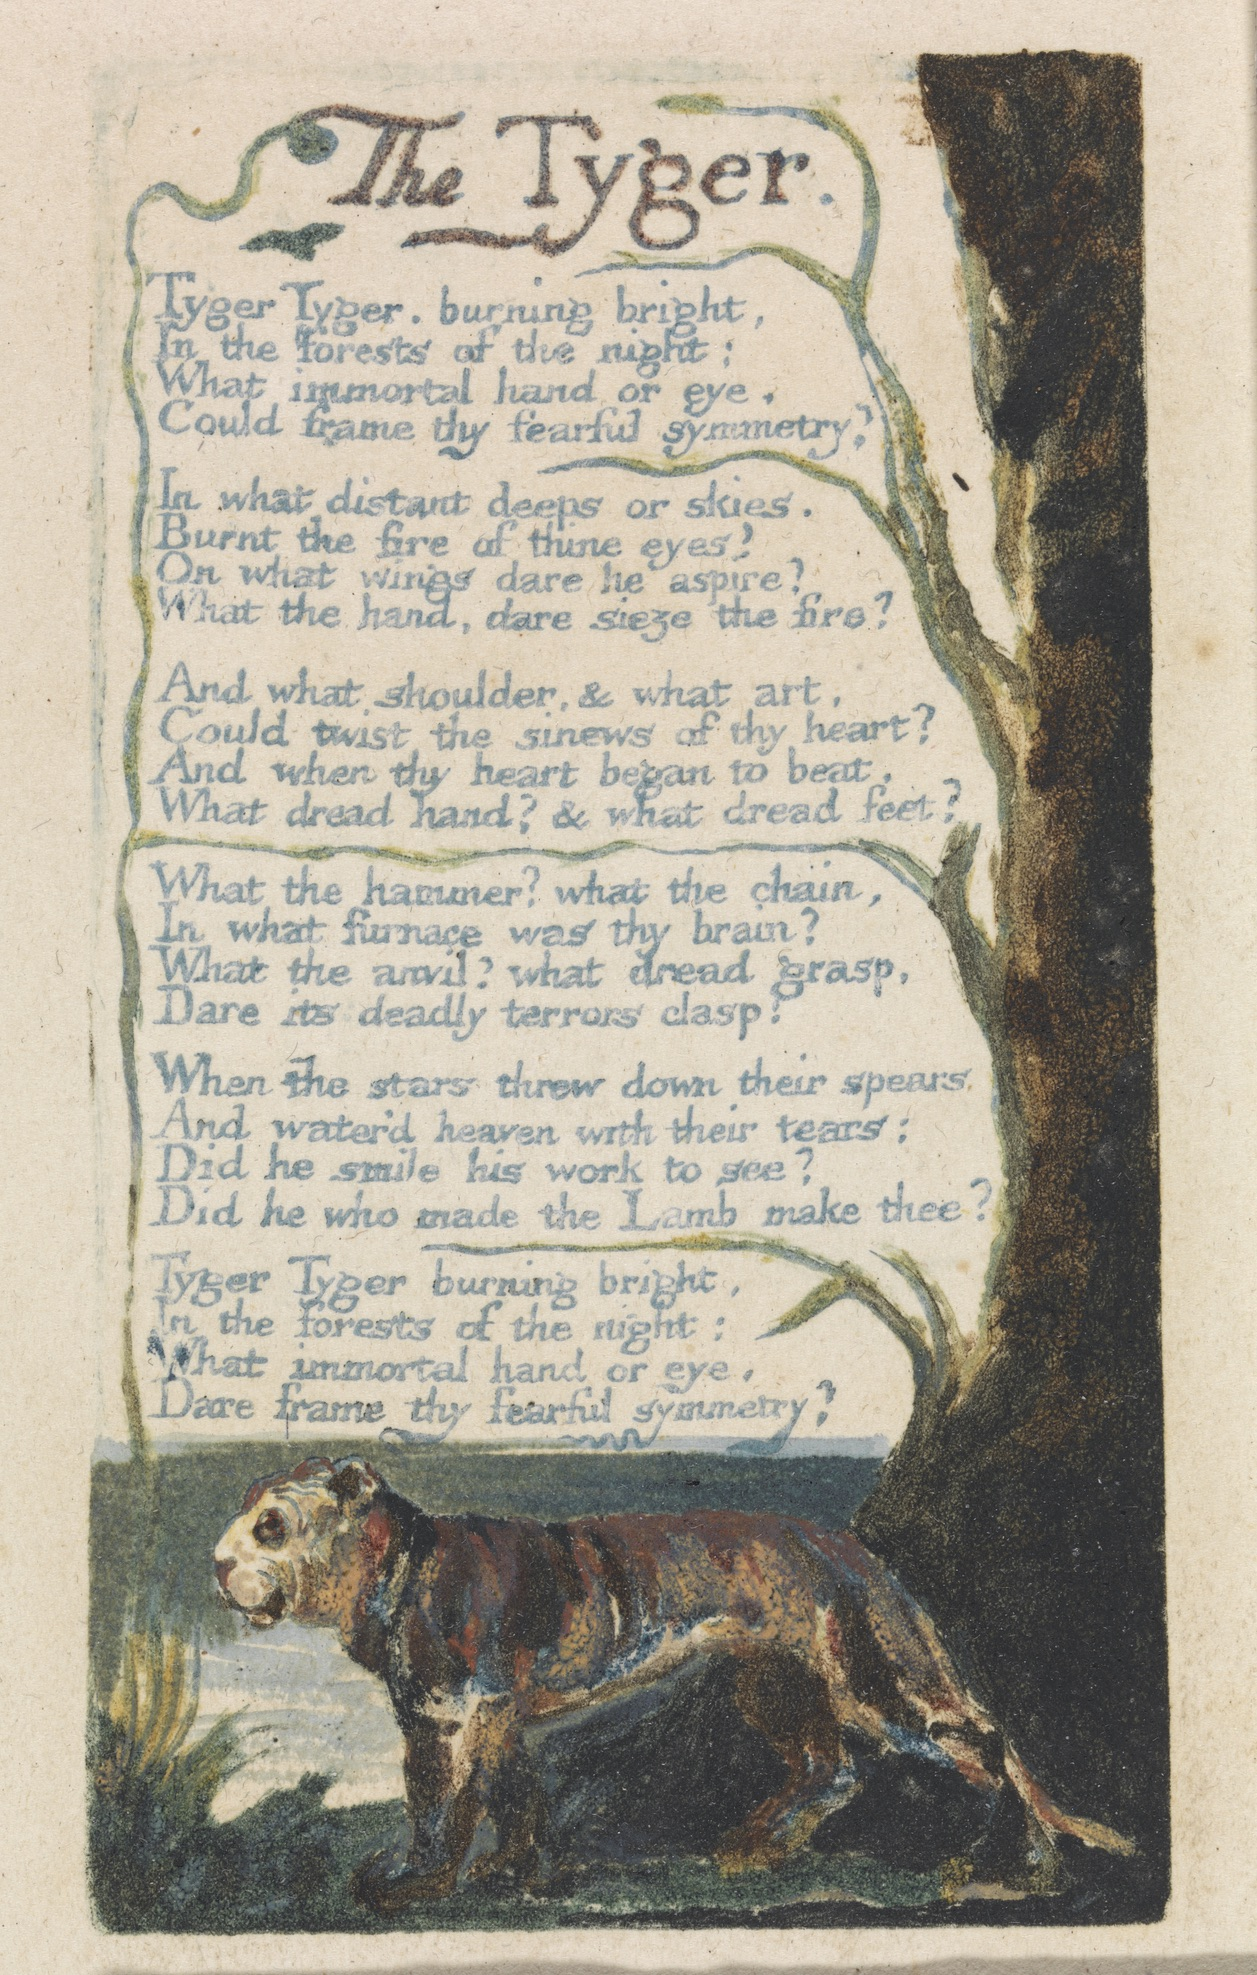 """William Blake, """"The Tyger,"""" from Songs of Innocence and of Experience, plate 42, 1794, color-printed relief etching with watercolor on cream wove paper. Yale Center for British Art, Paul Mellon Collection."""